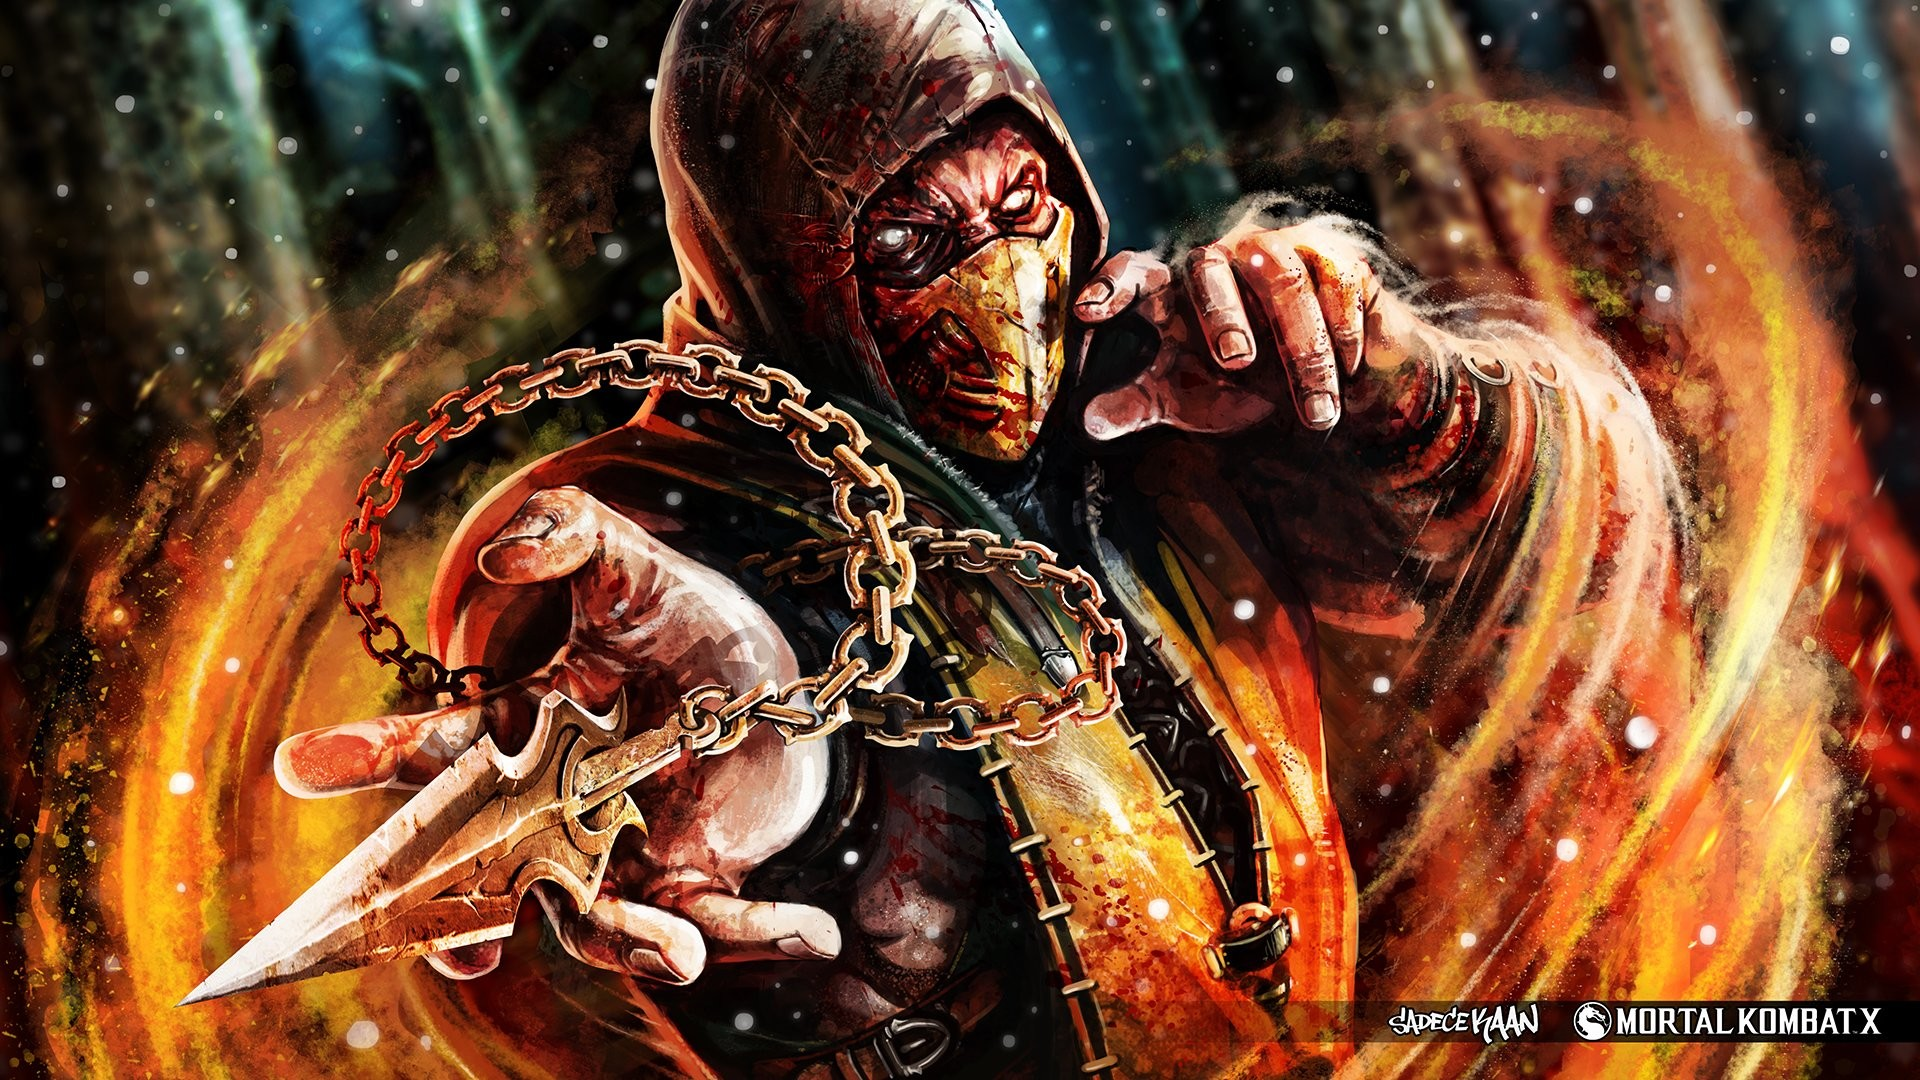 Mortal Kombat Scorpion Vs Sub Zero Wallpaper 1